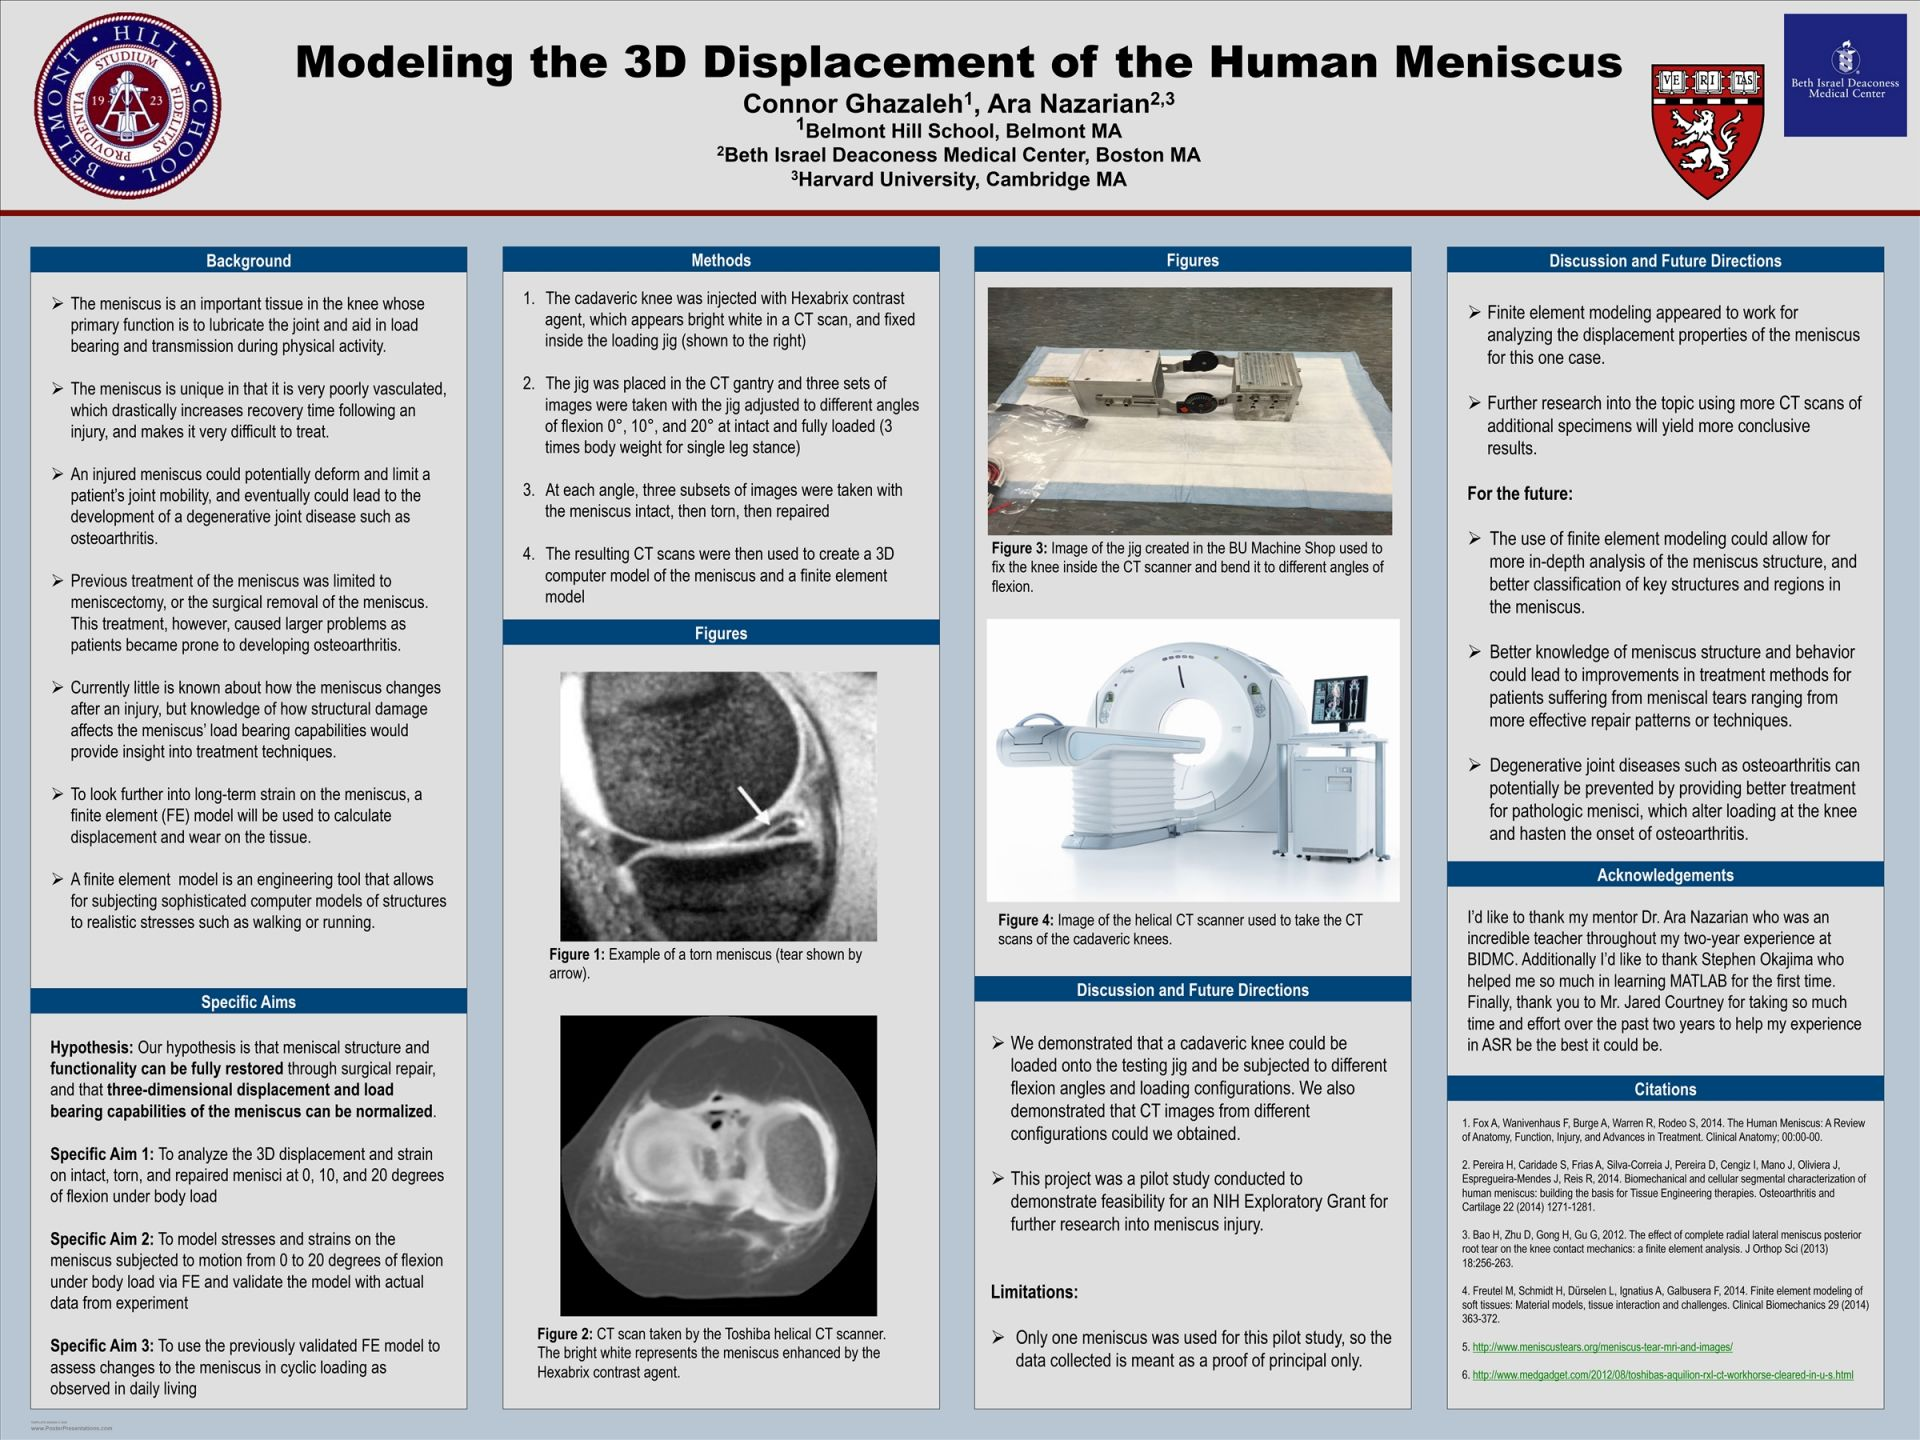 Connor Ghazaleh-Modeling the 3D Displacement of the Human Meniscus